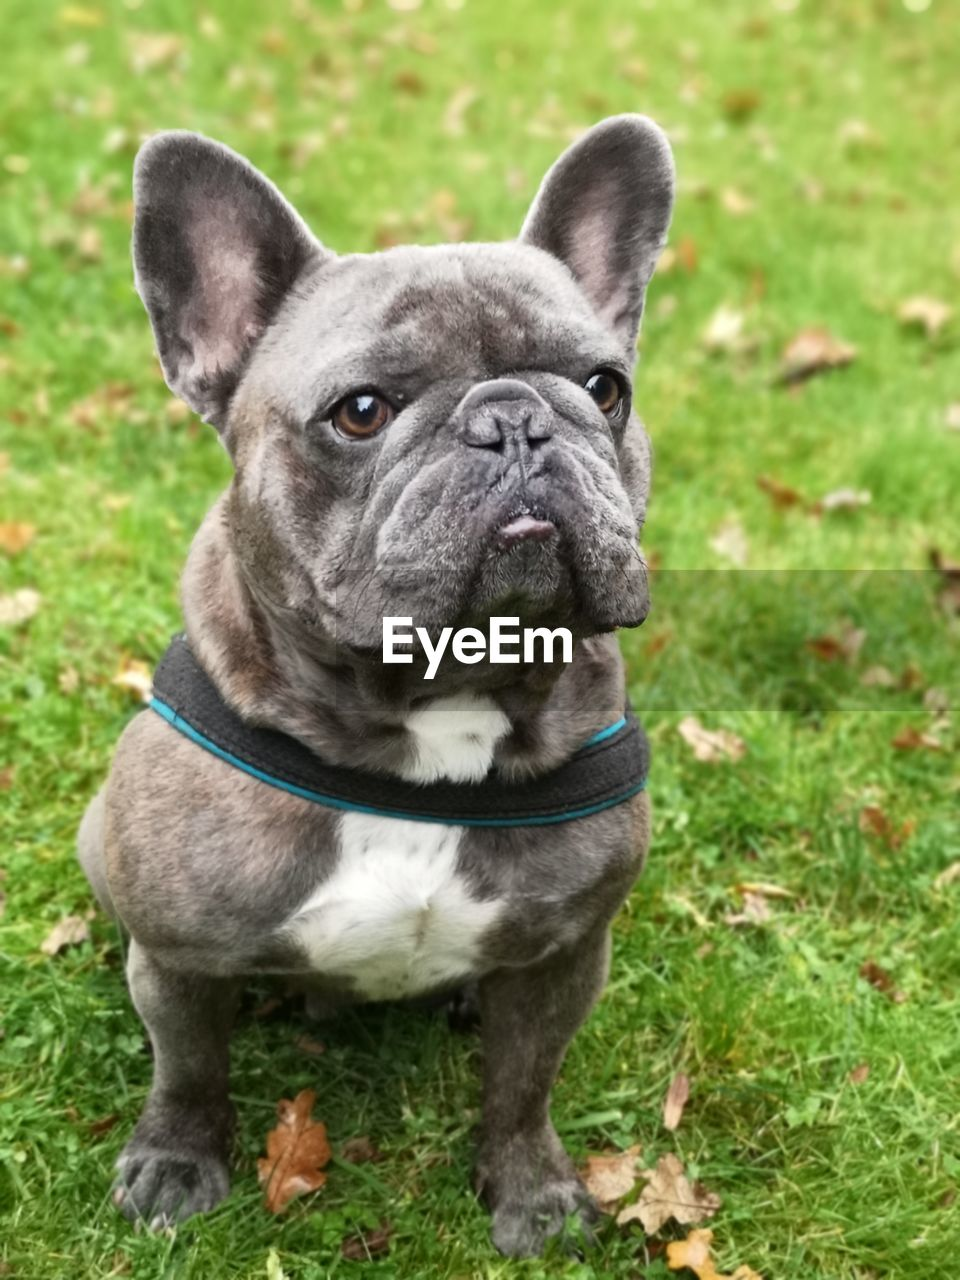 one animal, dog, canine, mammal, animal themes, domestic animals, grass, animal, pets, domestic, french bulldog, portrait, plant, no people, nature, close-up, vertebrate, day, focus on foreground, field, small, outdoors, animal head